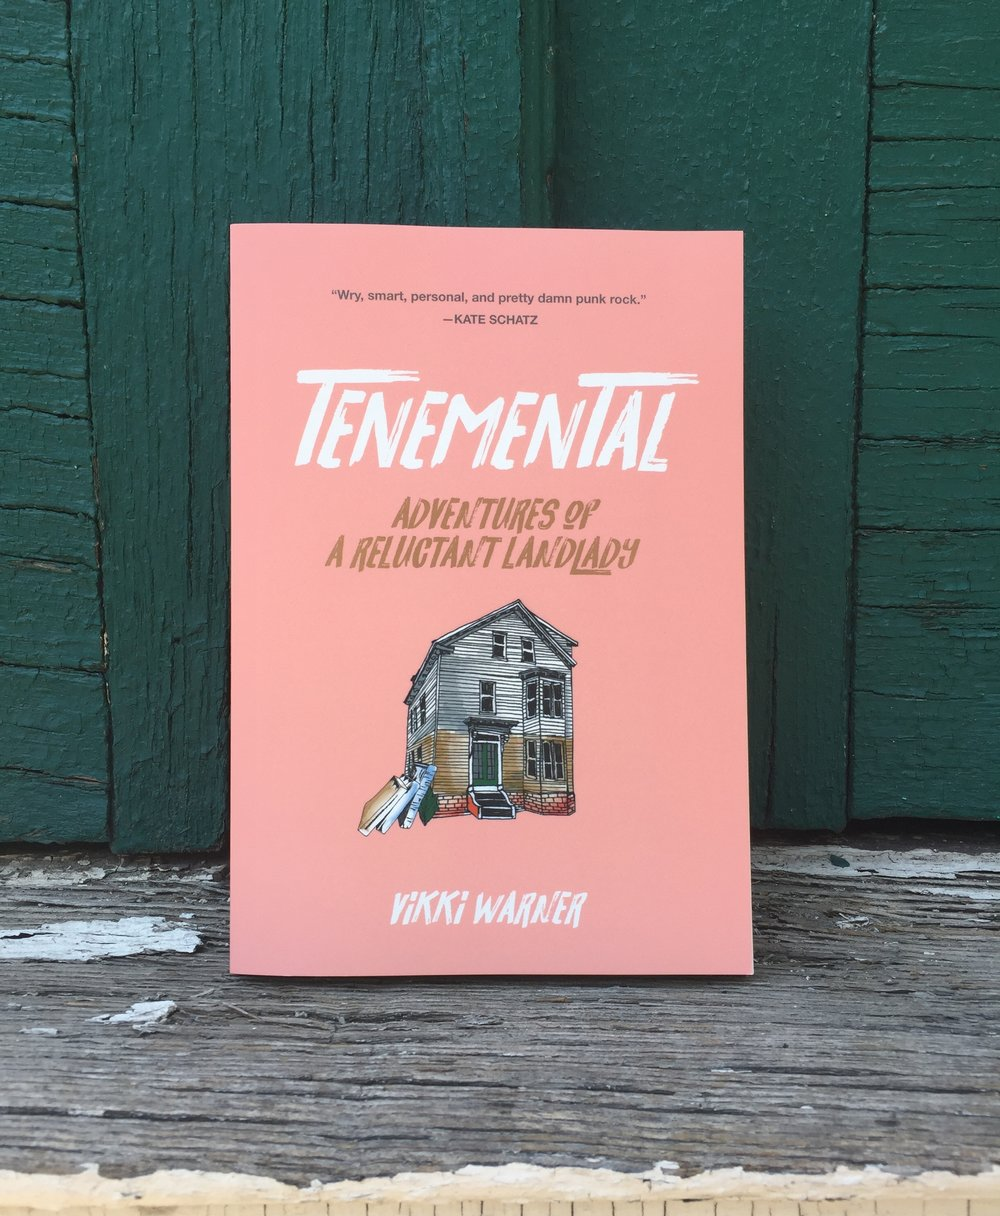 TENEMENTAL: Adventures of a Reluctant Landlady - //////////  Now available  from   /////////////////  //////////  the   F E M I N I S T   P R E S S  ///////